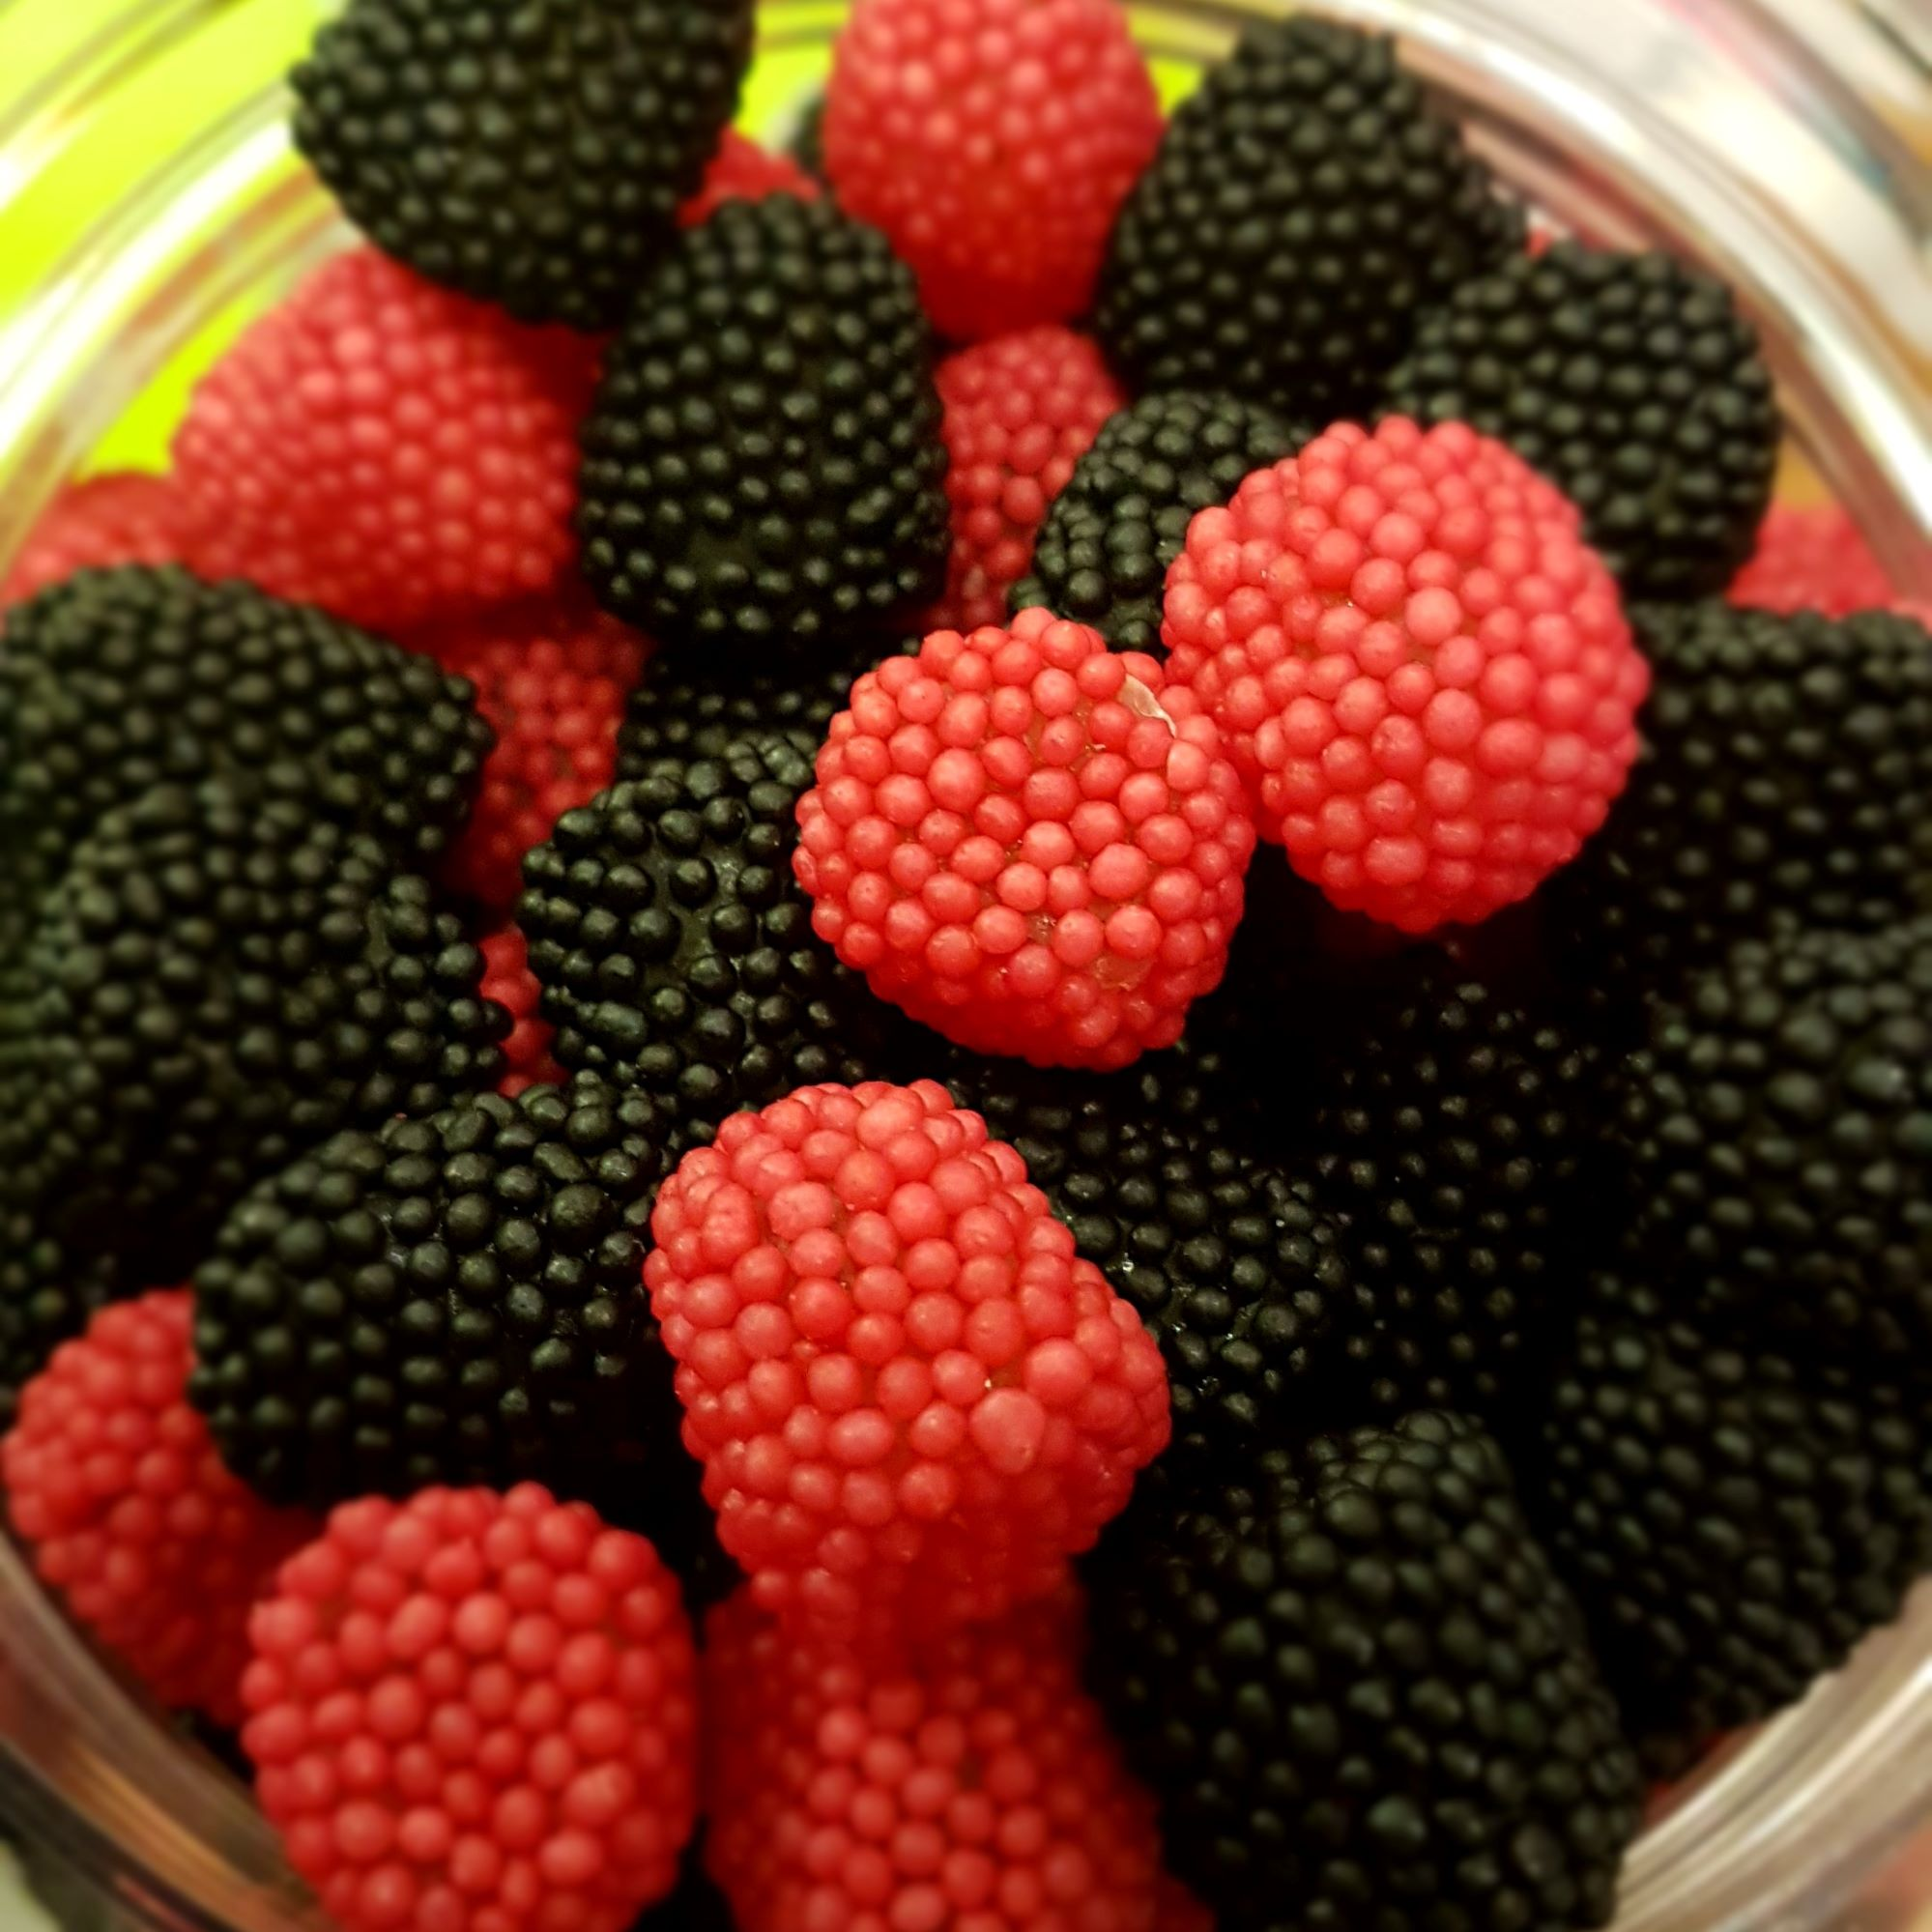 Black & Raspberry Berries